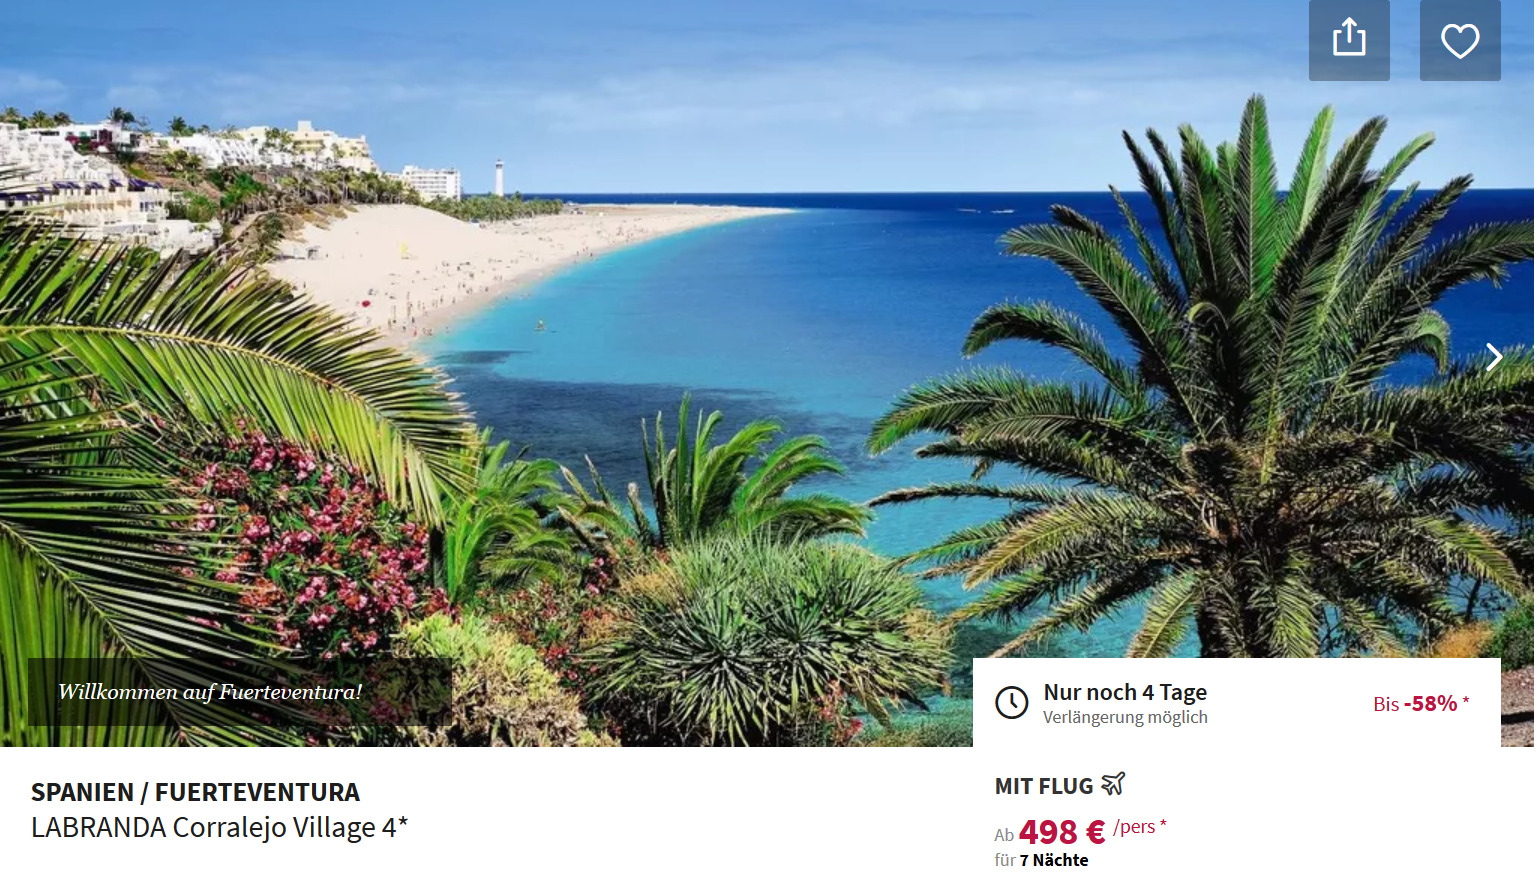 Fuerteventura All Inclusive Urlaub